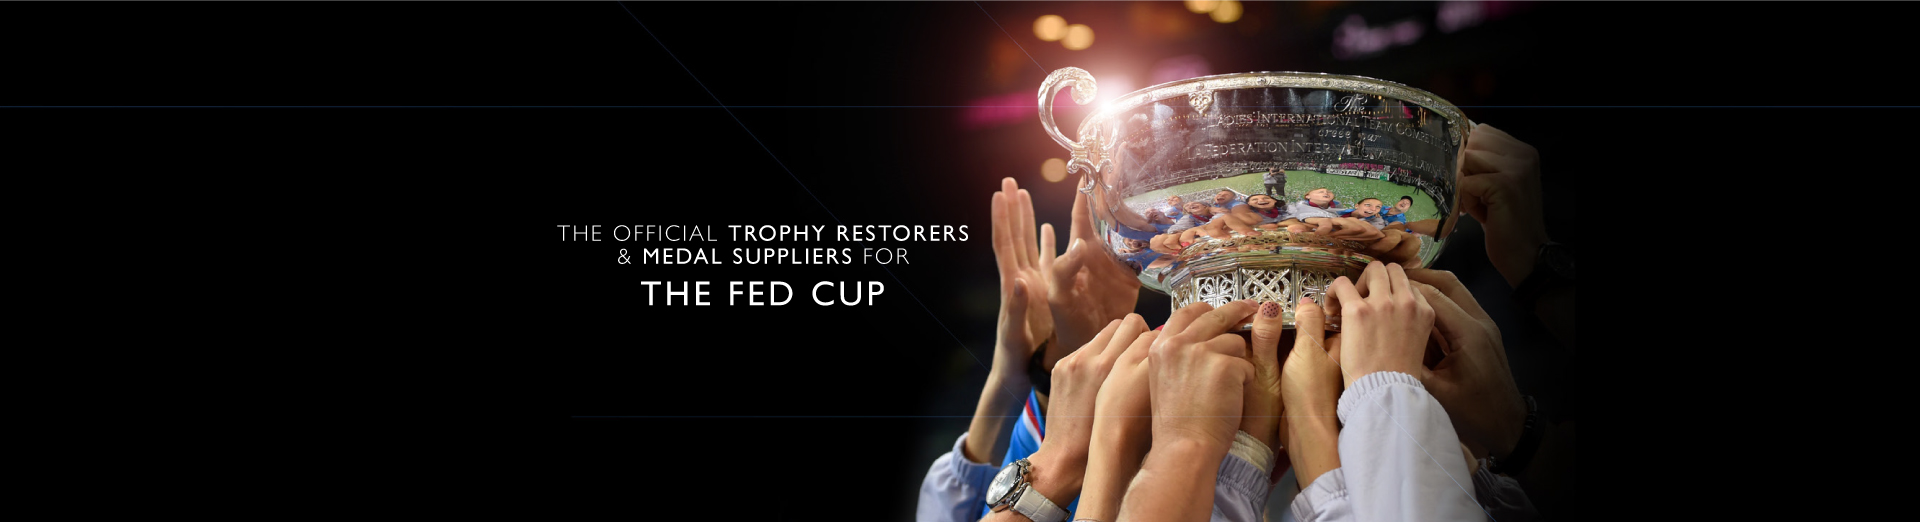 The Fed Cup